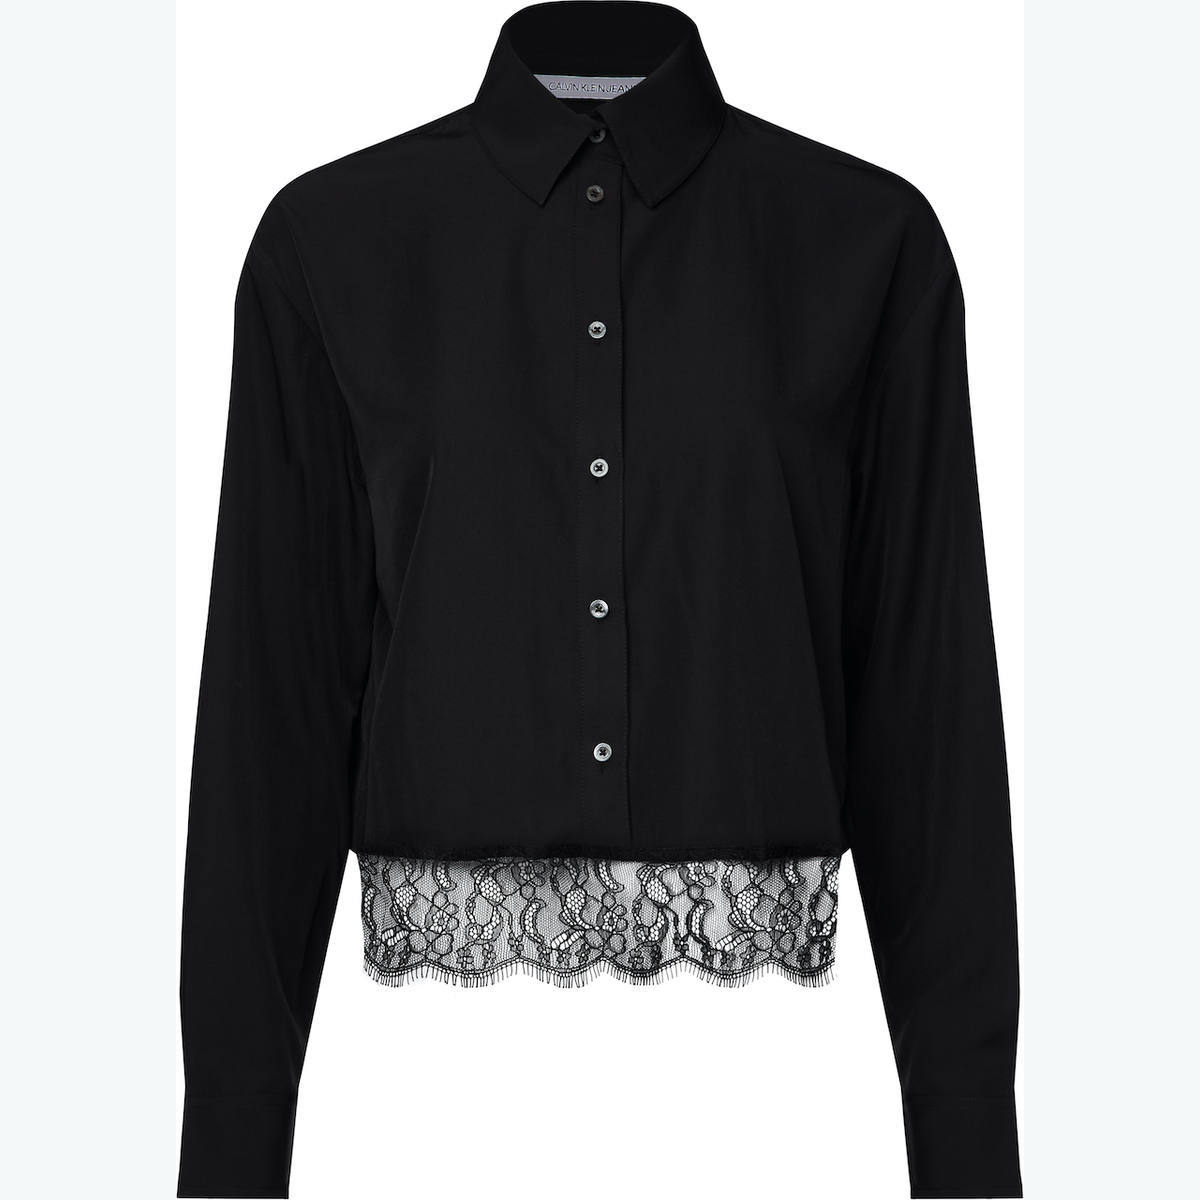 CROPPED SHIRT WITH LACE HEM